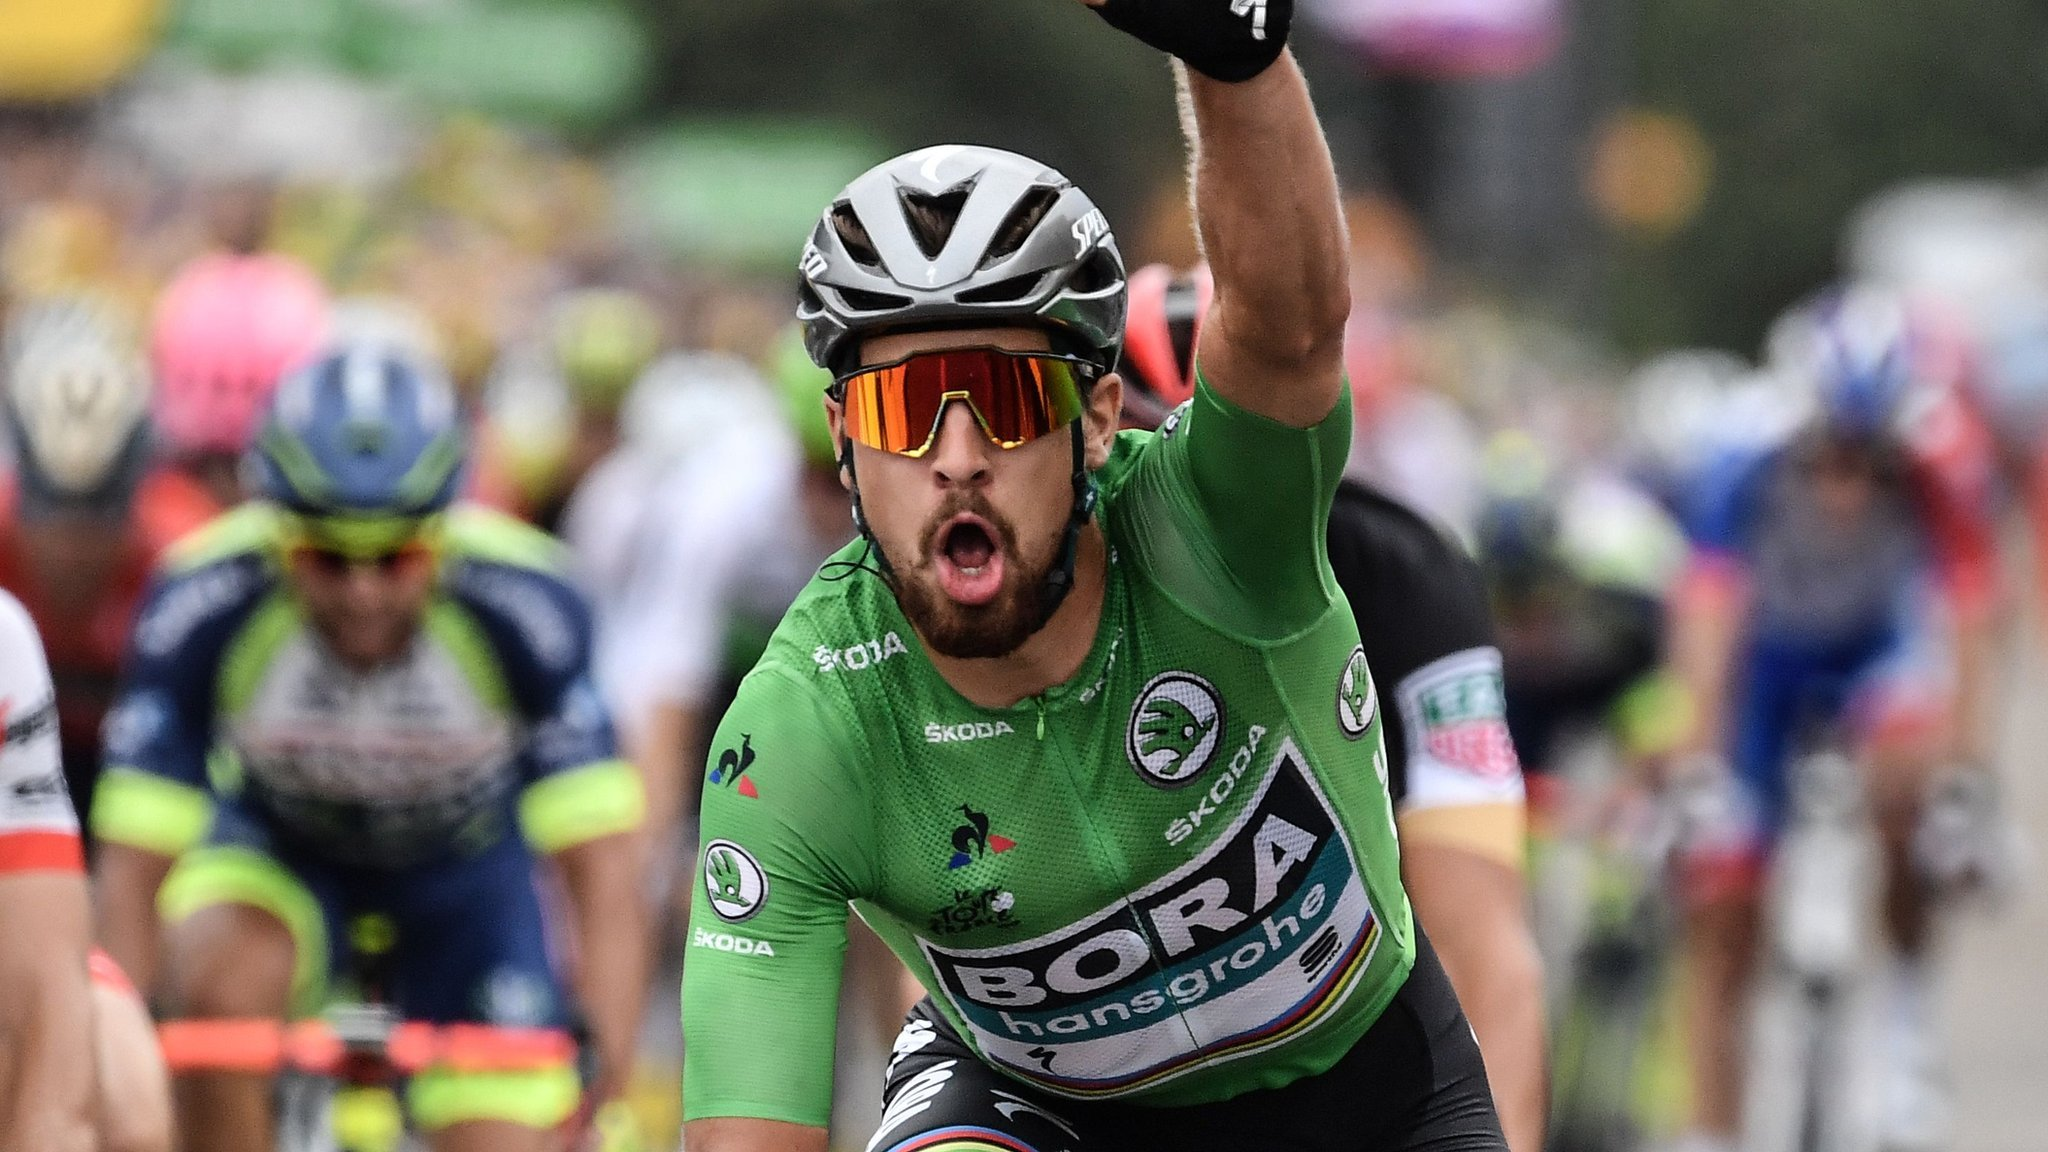 Sagan wins third stage of 2018 Tour as Thomas stays in yellow